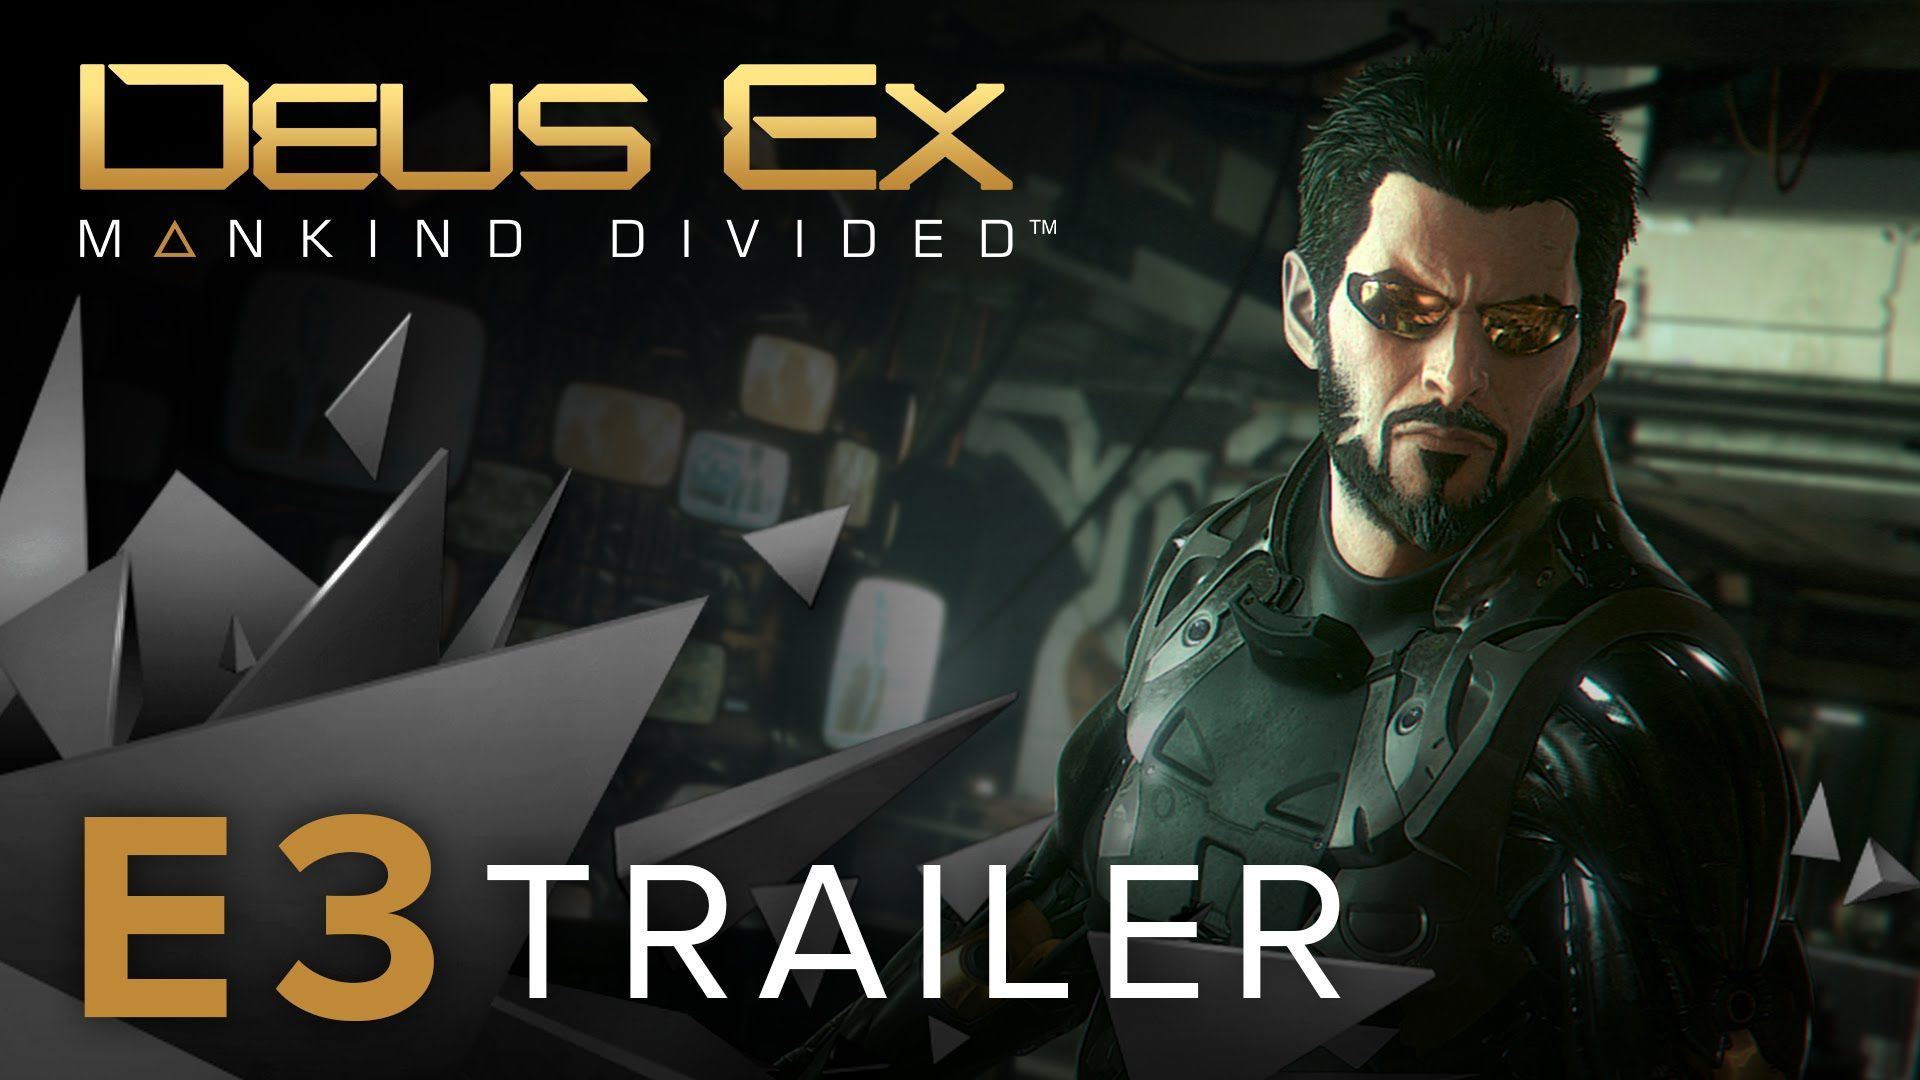 Square Enix Already Showcase Gameplay Of Deus Ex Mankind Divided On Their Youtube Channel And Now In E3 Develo Deus Ex Deus Ex Mankind Divided Deus Ex Mankind